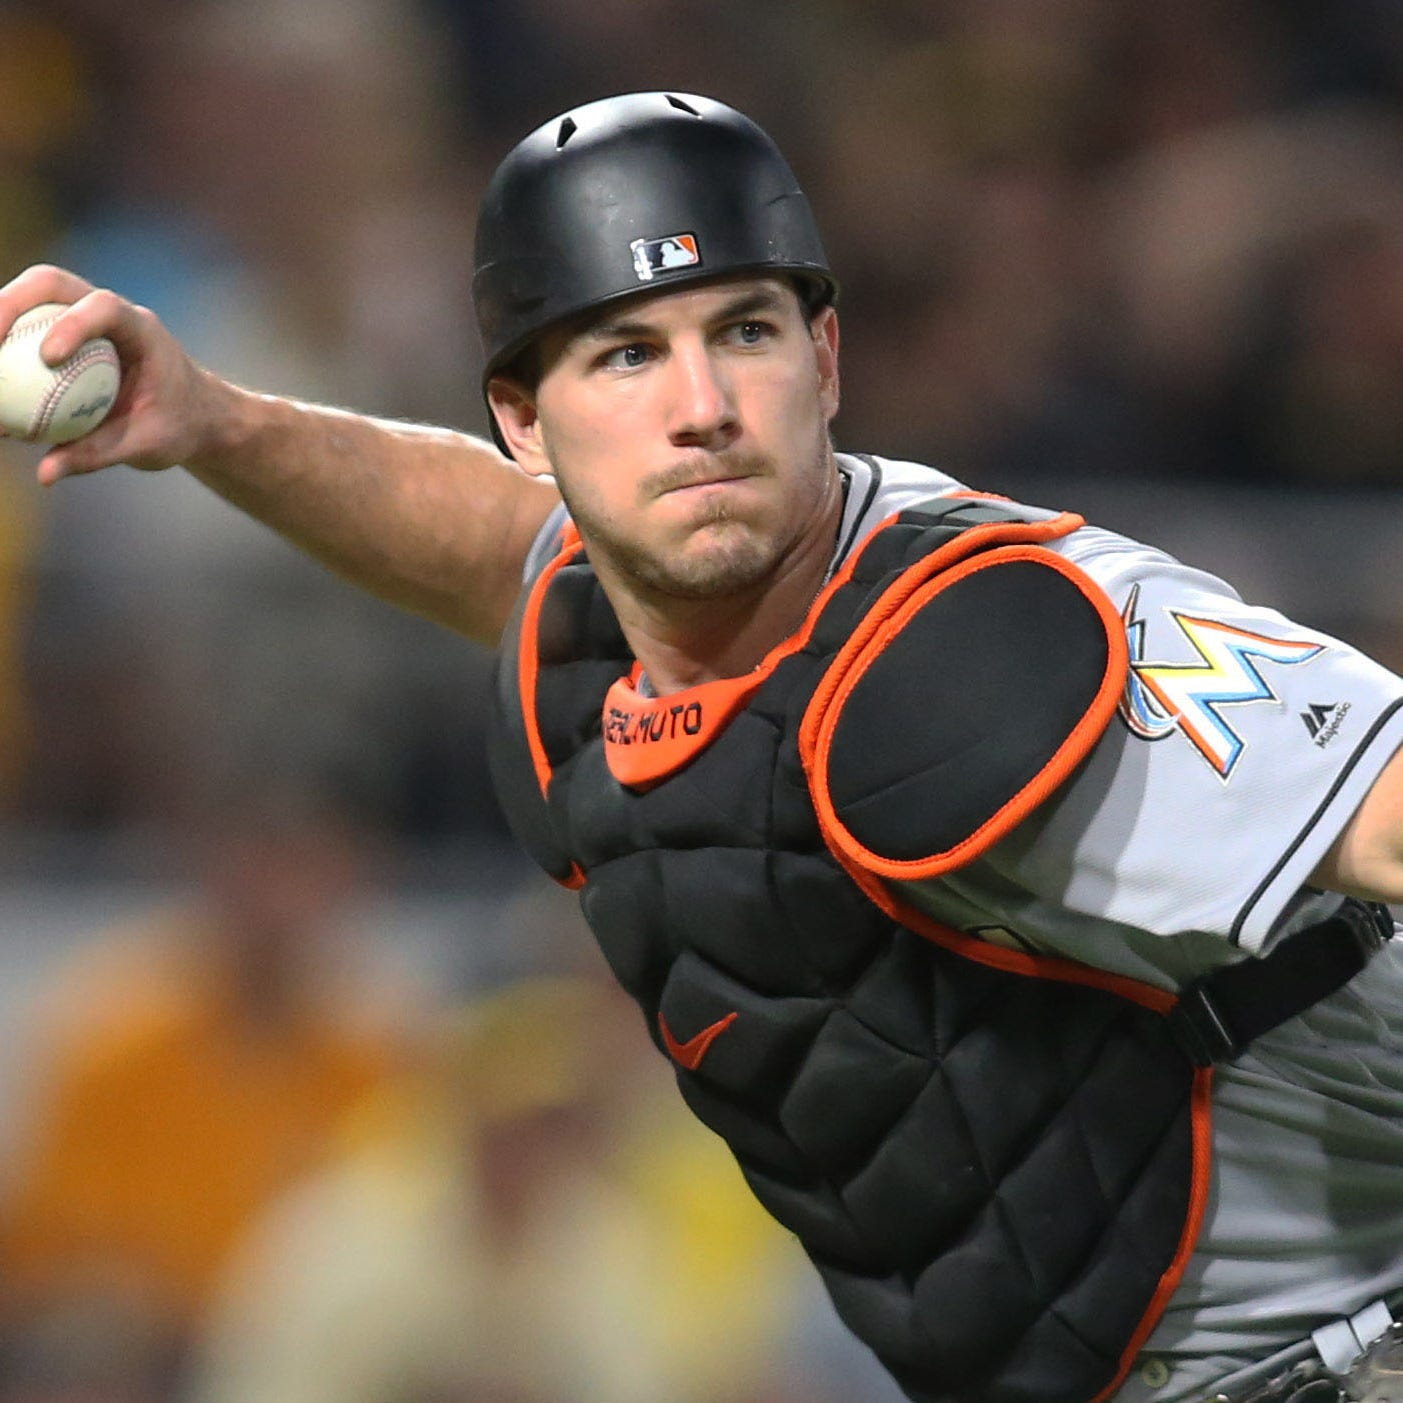 Phillies get All-Star catcher J.T. Realmuto in trade with Marlins